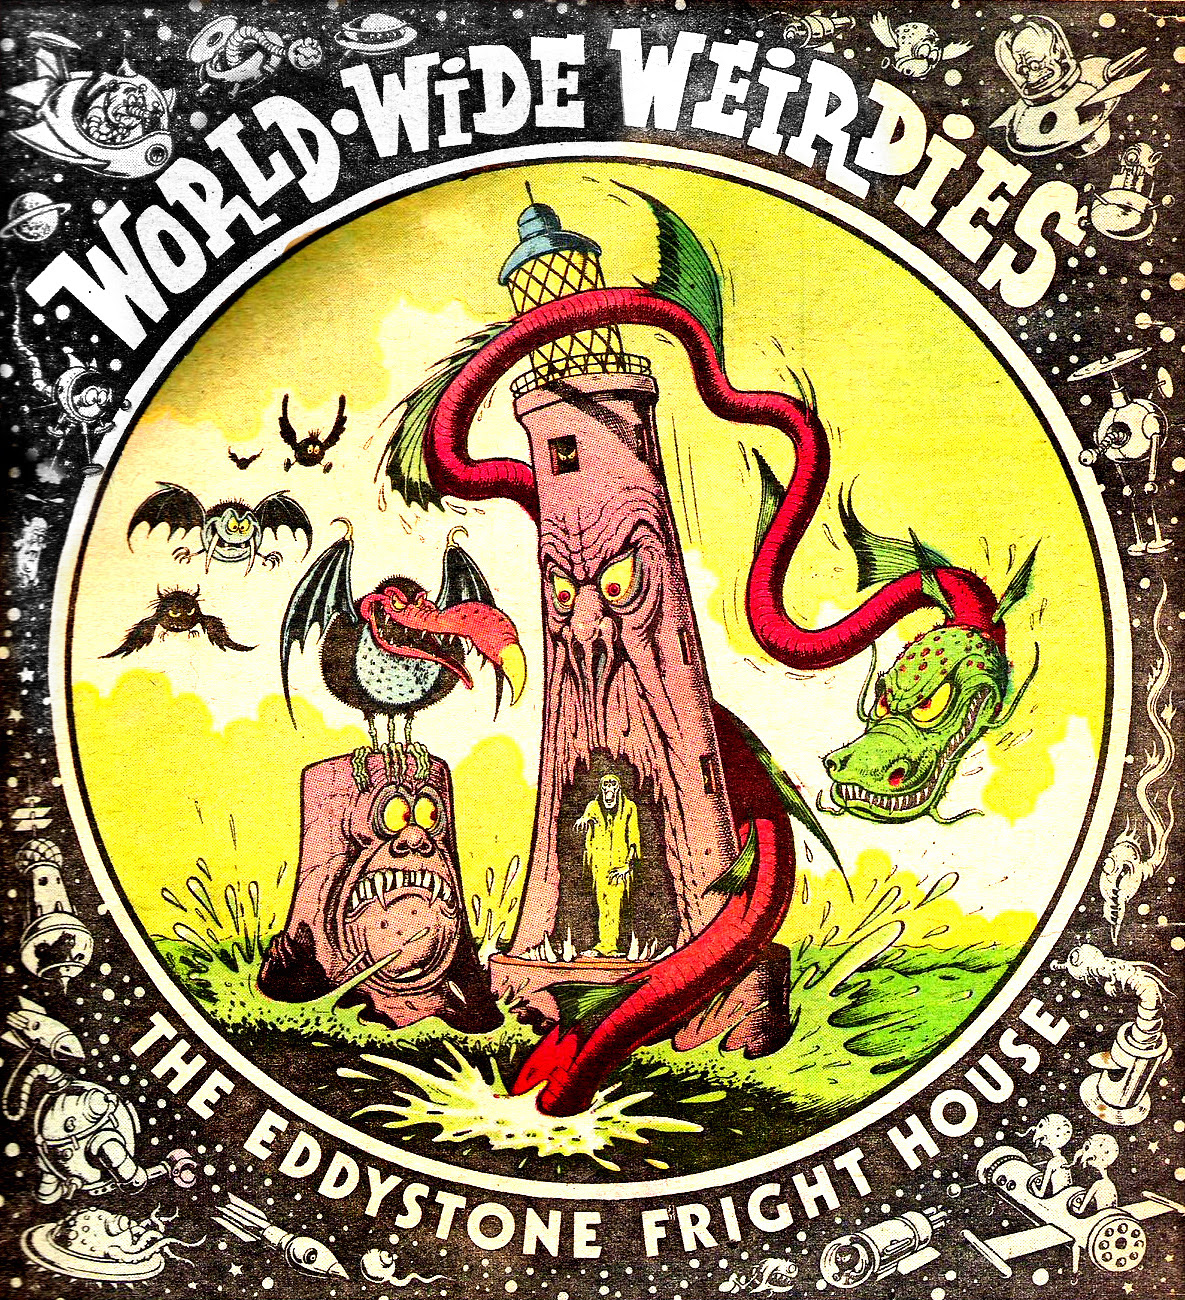 Ken Reid - World Wide Weirdies 72